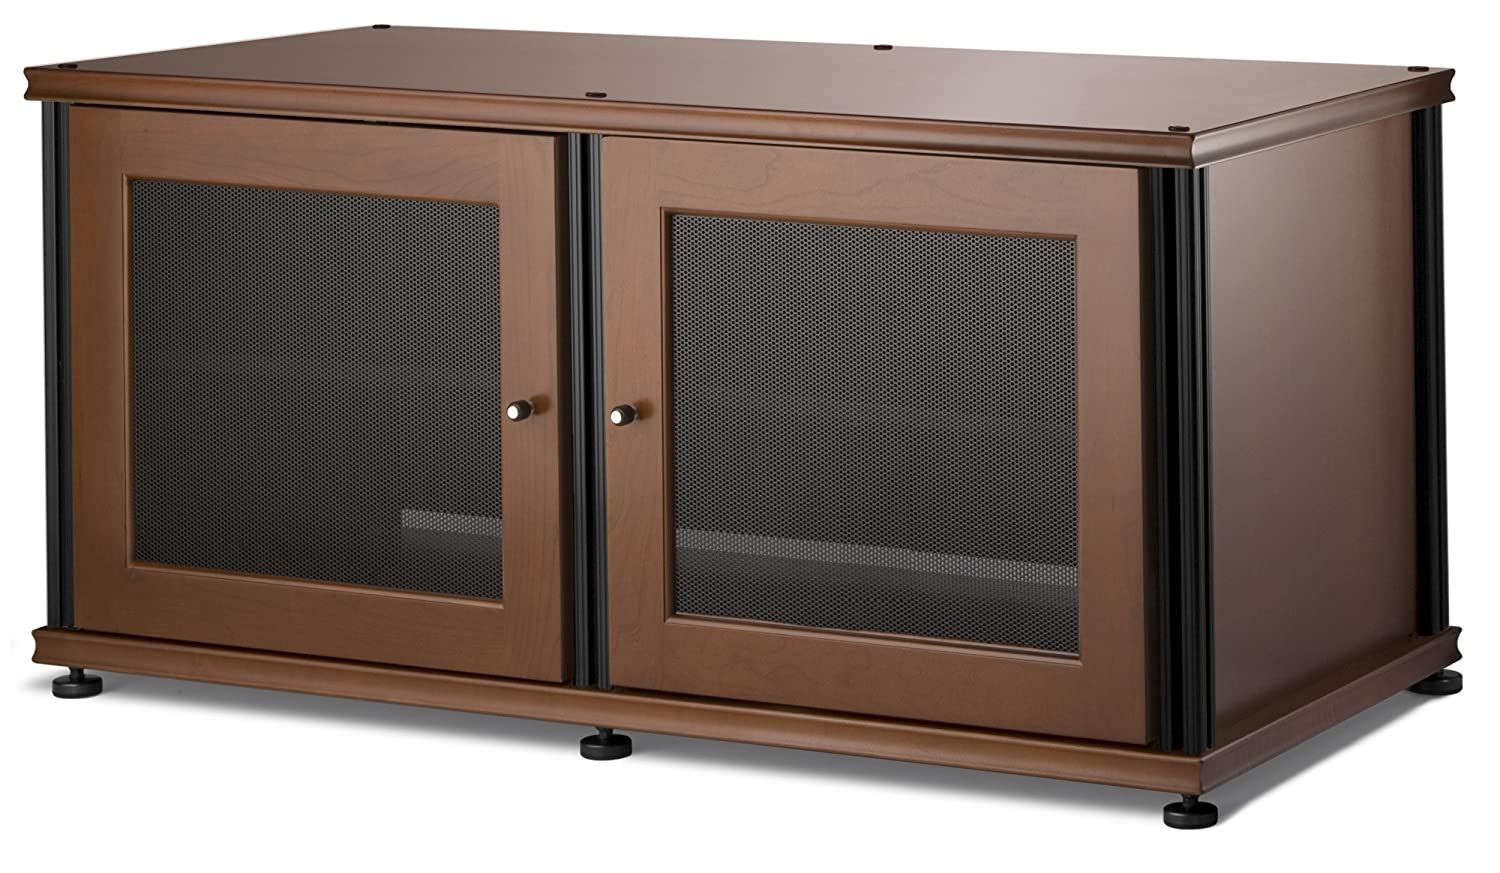 very closeup short years salamander furniture cabinet this collaborative adept we are innovative blog at ces cabinets after ultra custom av providing solutions sony archives of category creating throw over vpl the